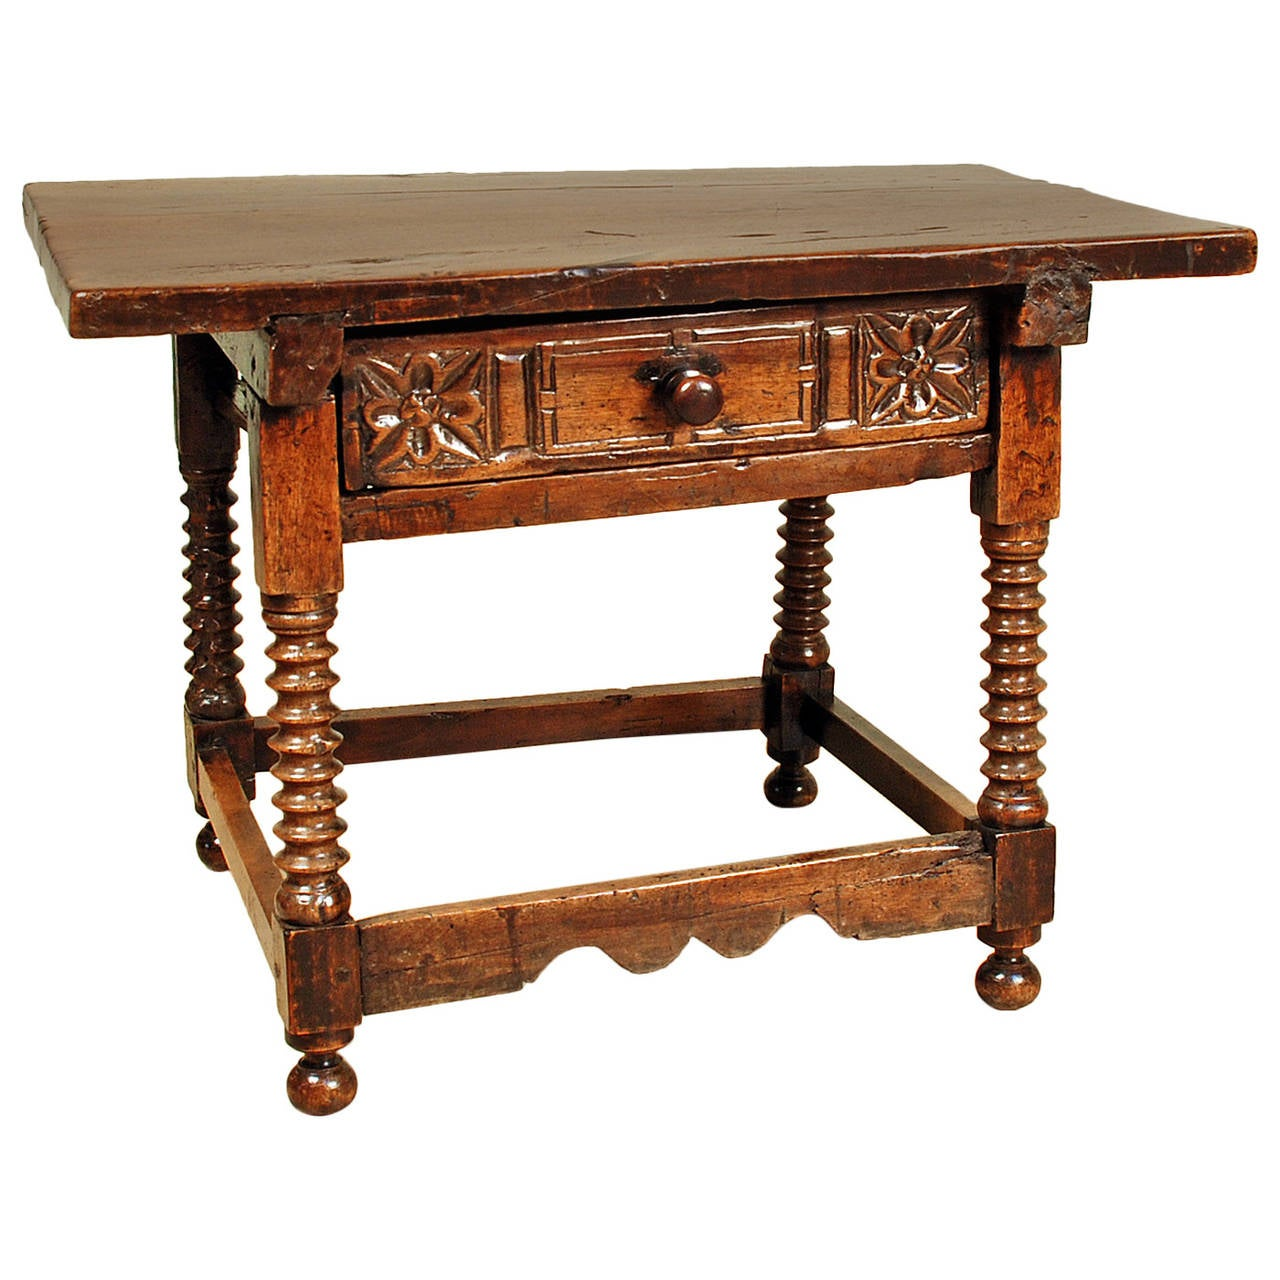 17th century spanish baroque period walnut side table at for Spanish baroque furniture